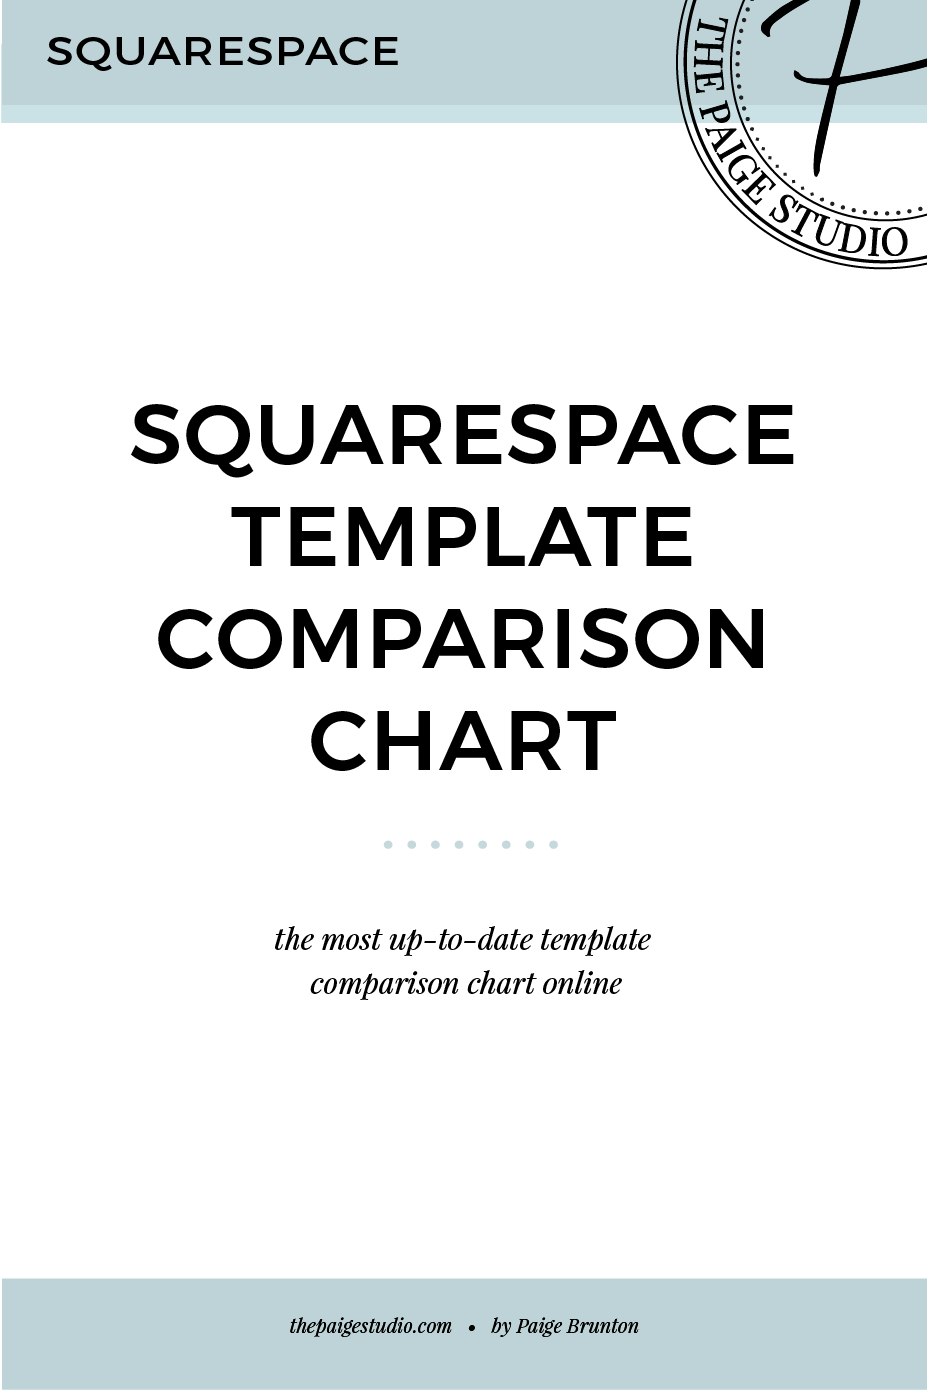 Squarespace+template+comparison+chart.png